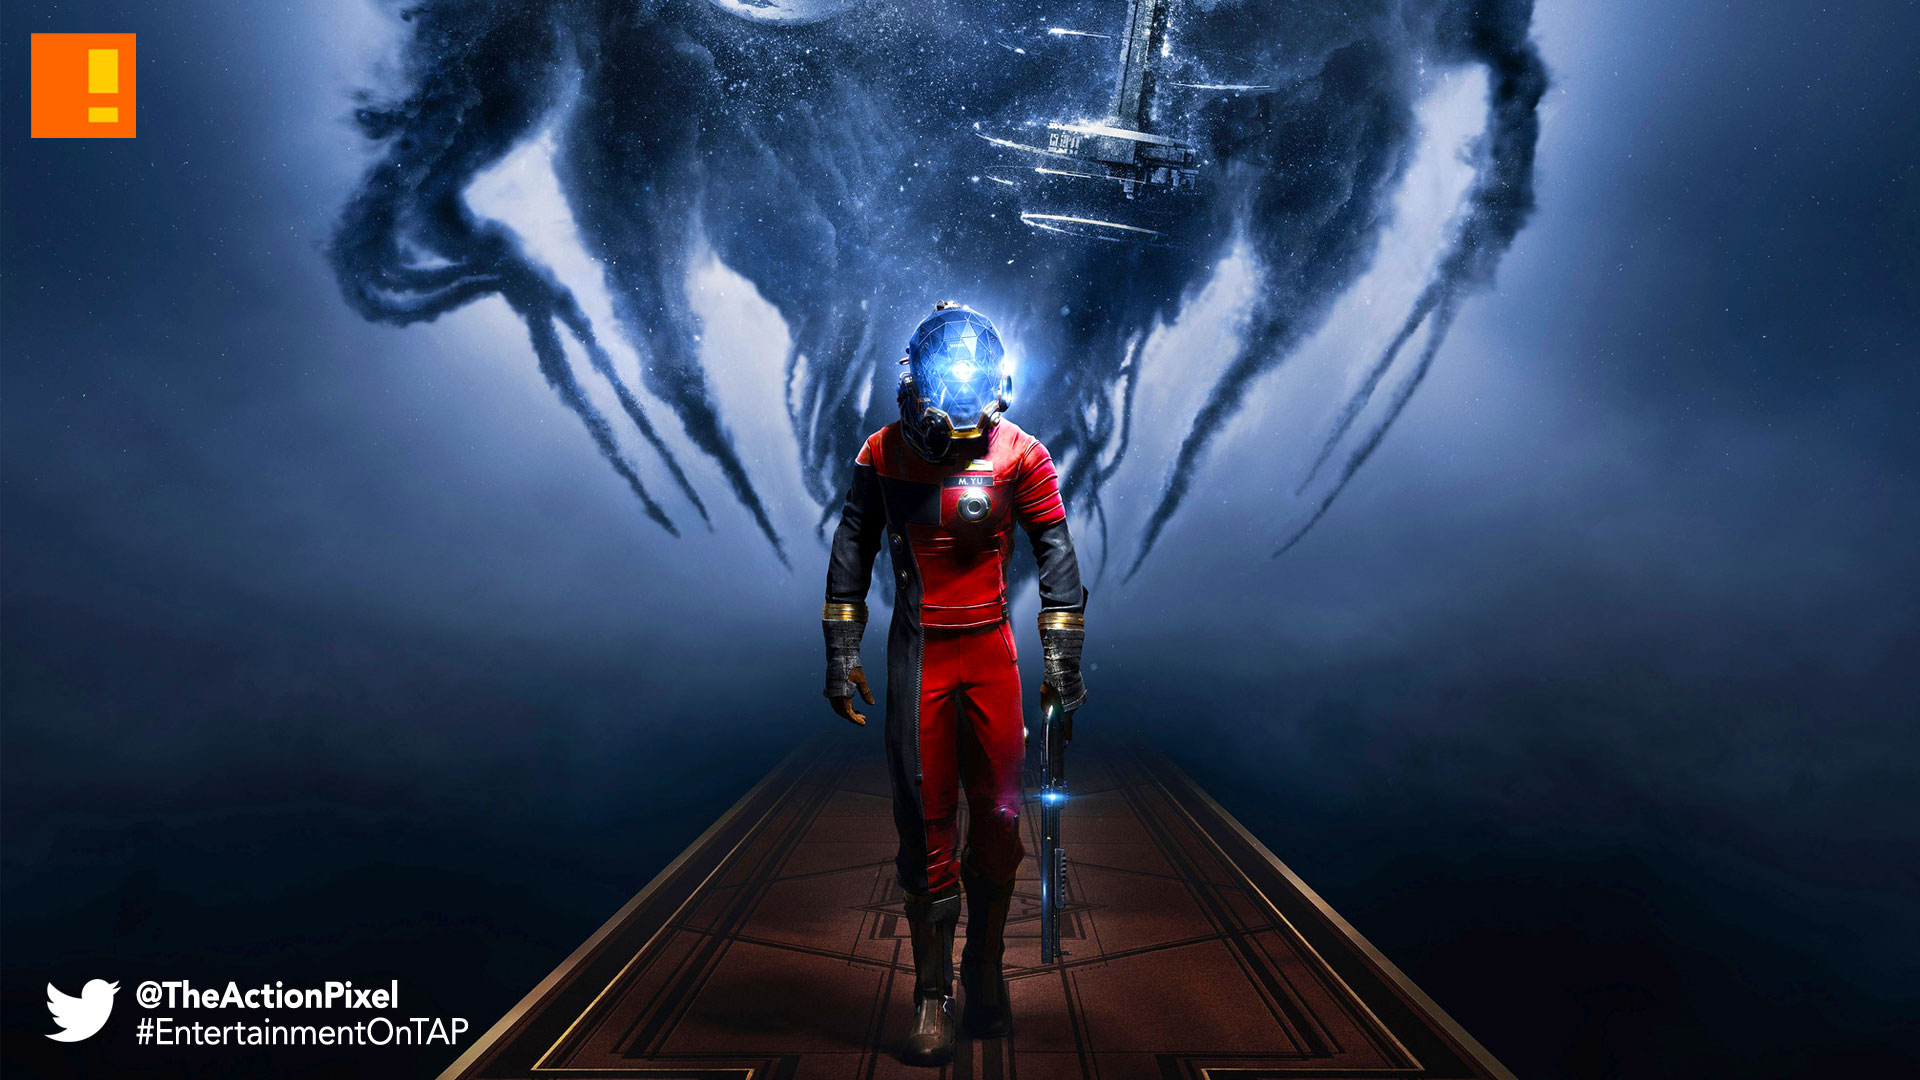 prey,bethesda softworks, official, gameplay trailer,trailer,the action pixel, entertainment on tap,